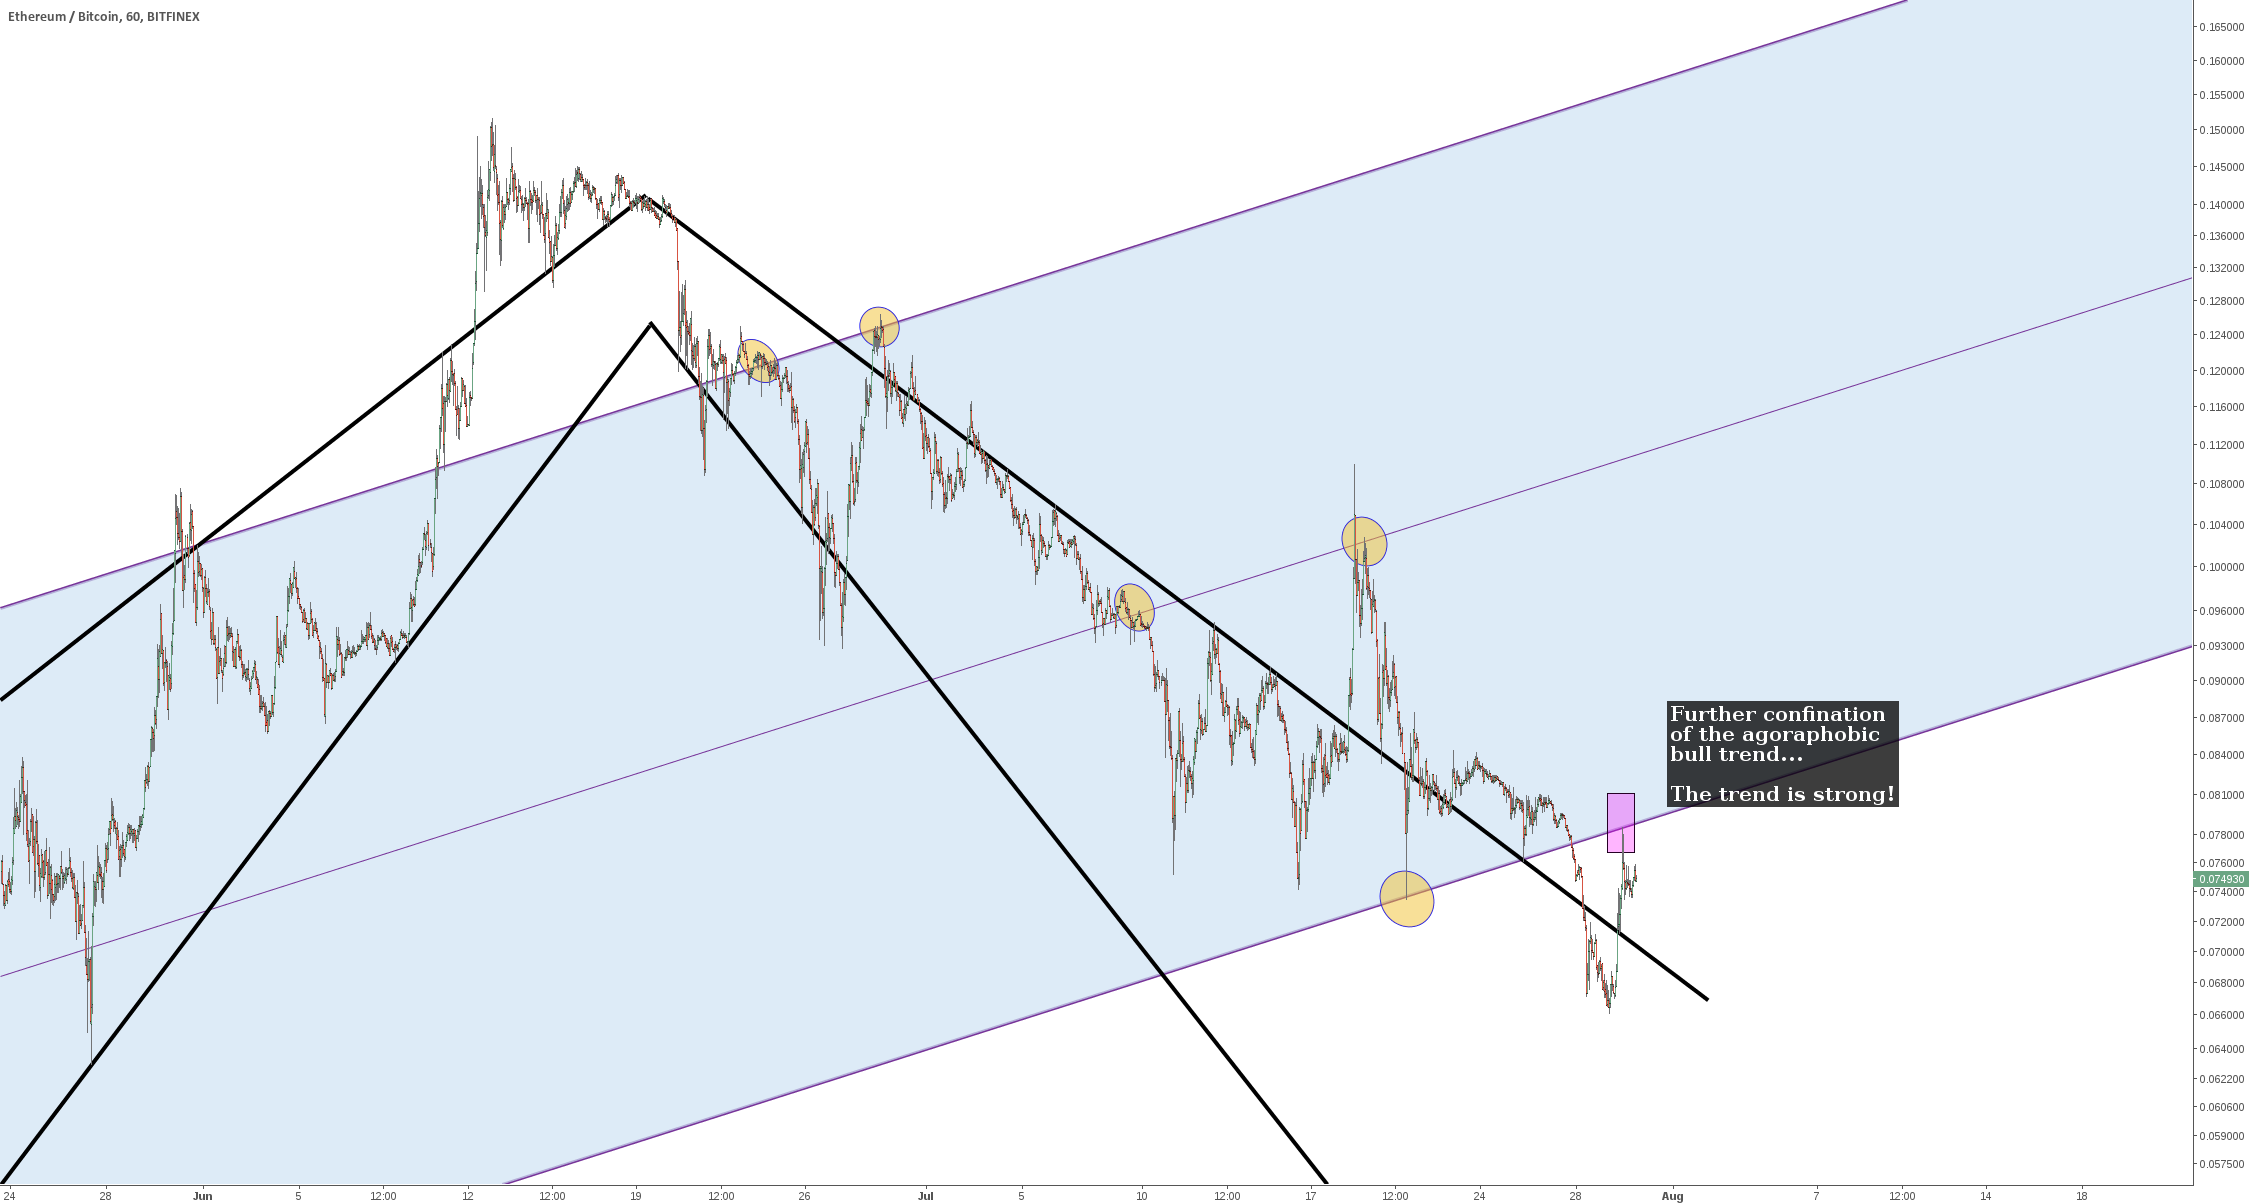 Ethe/Bitcoin - futher confirmation of trend